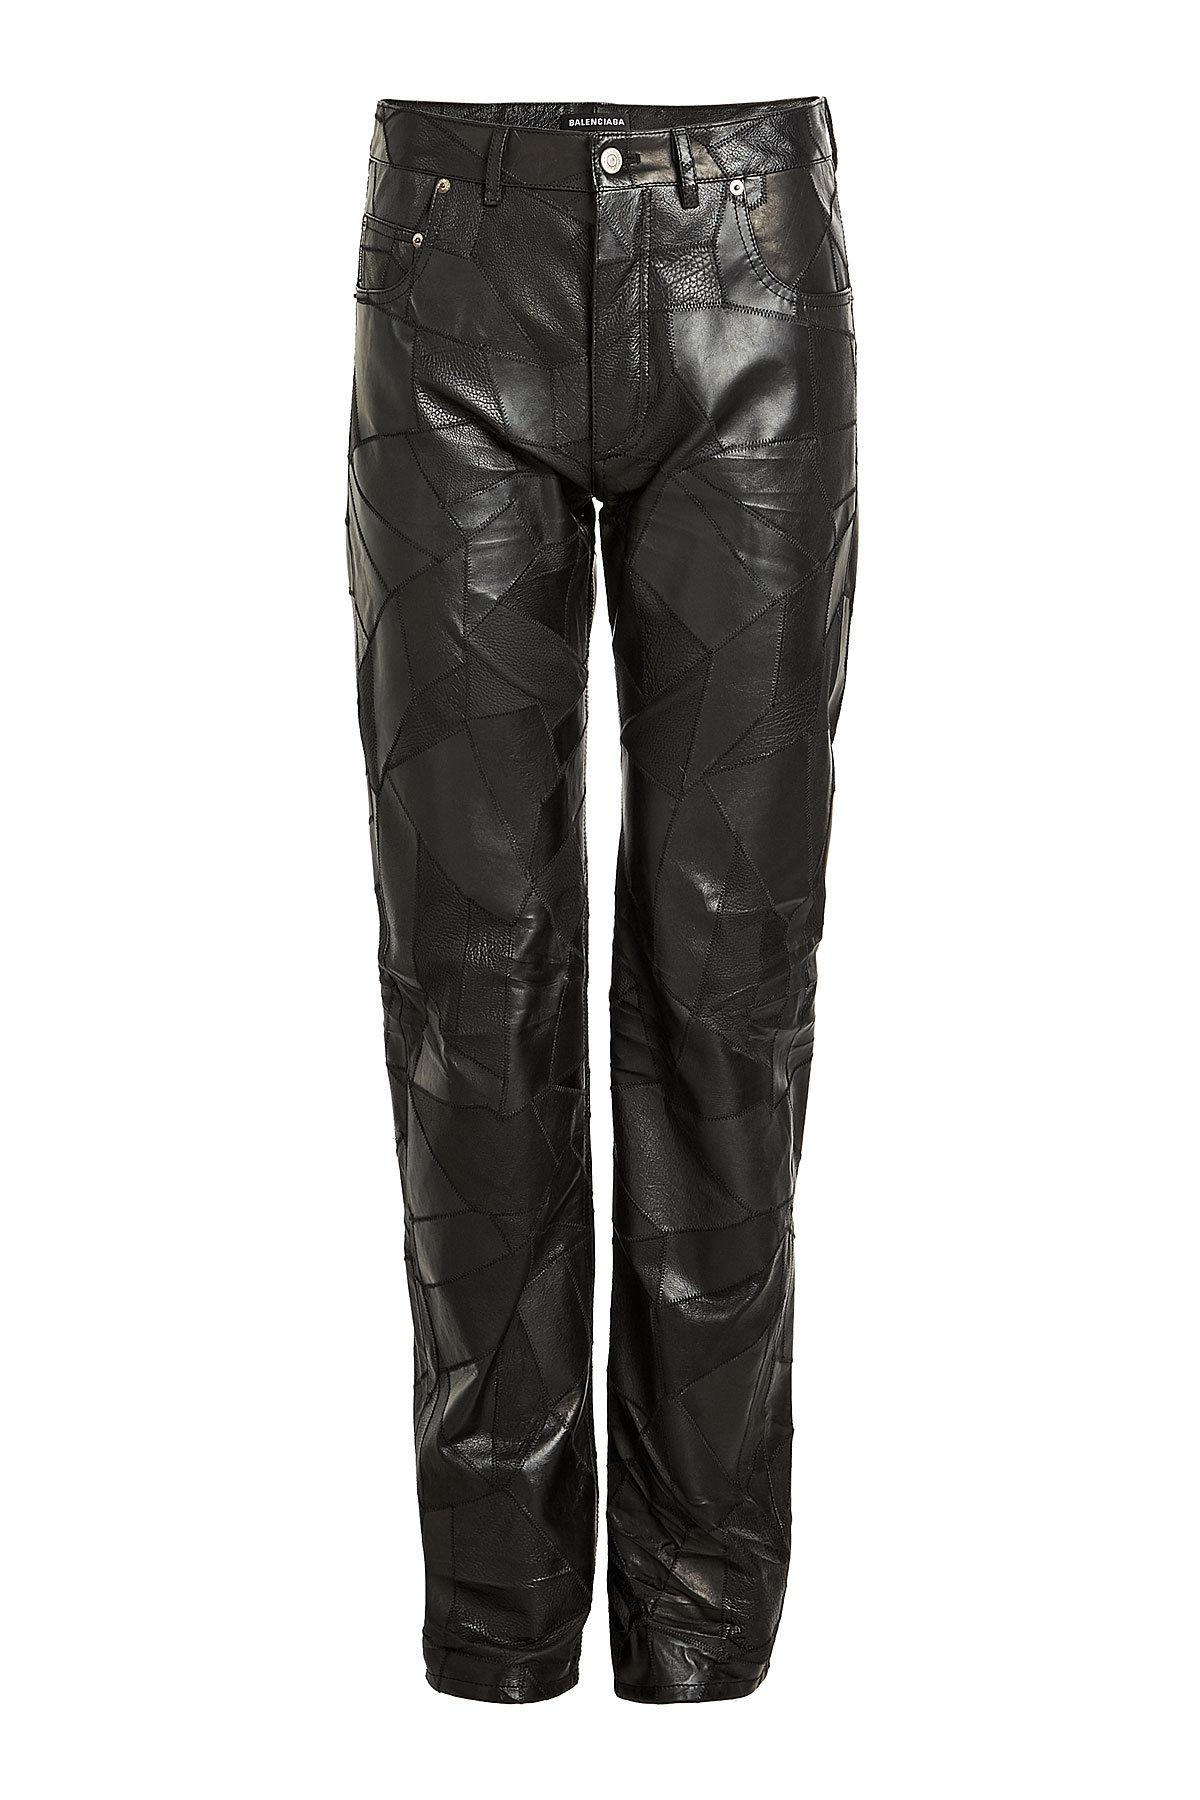 aec0ded9afc1b Lyst - Balenciaga Patchwork Leather Pants in Black for Men